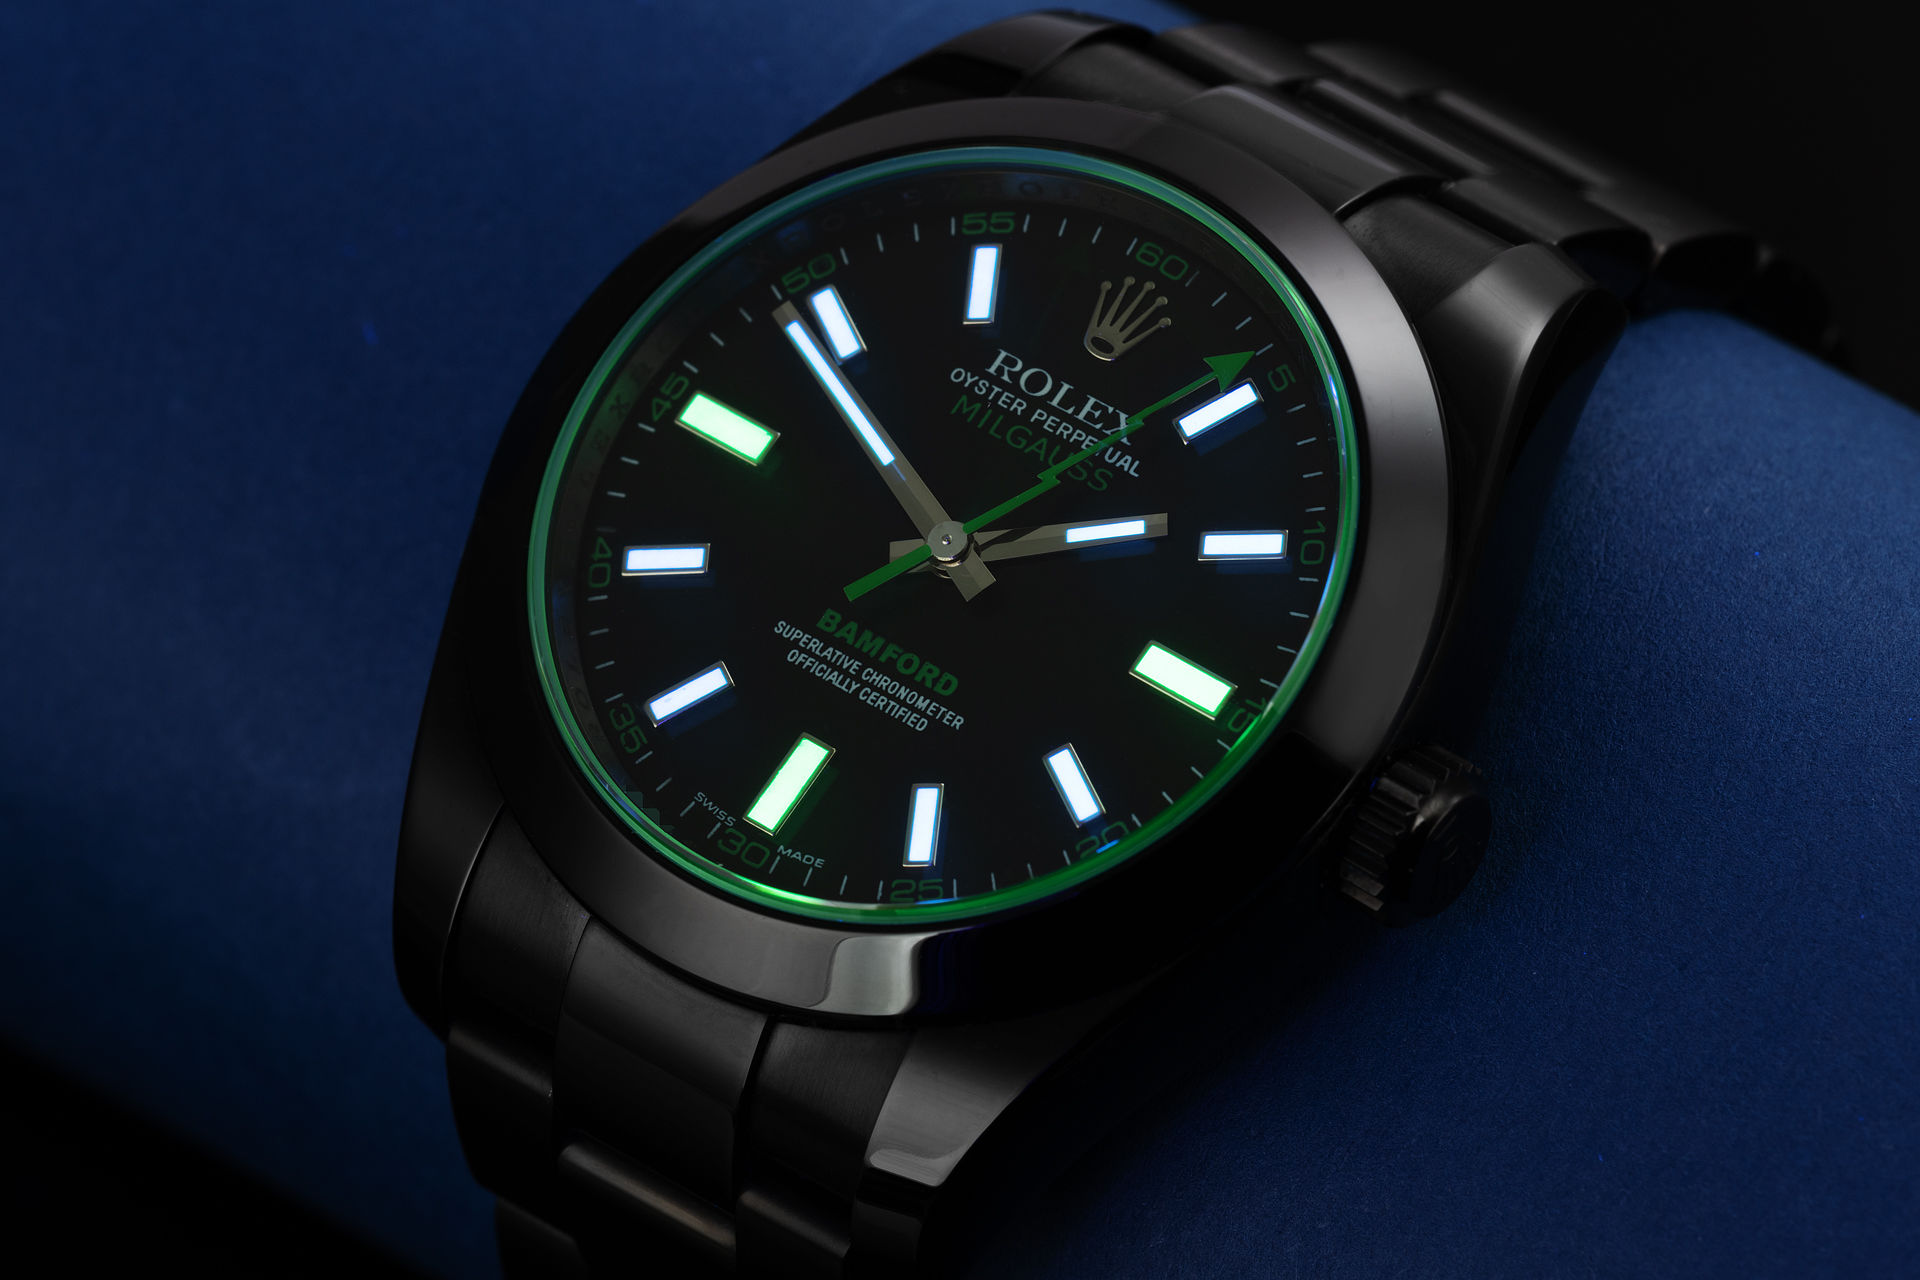 ref 116400GV | 'Limited Edition' One of 100  | Bamford Milgauss